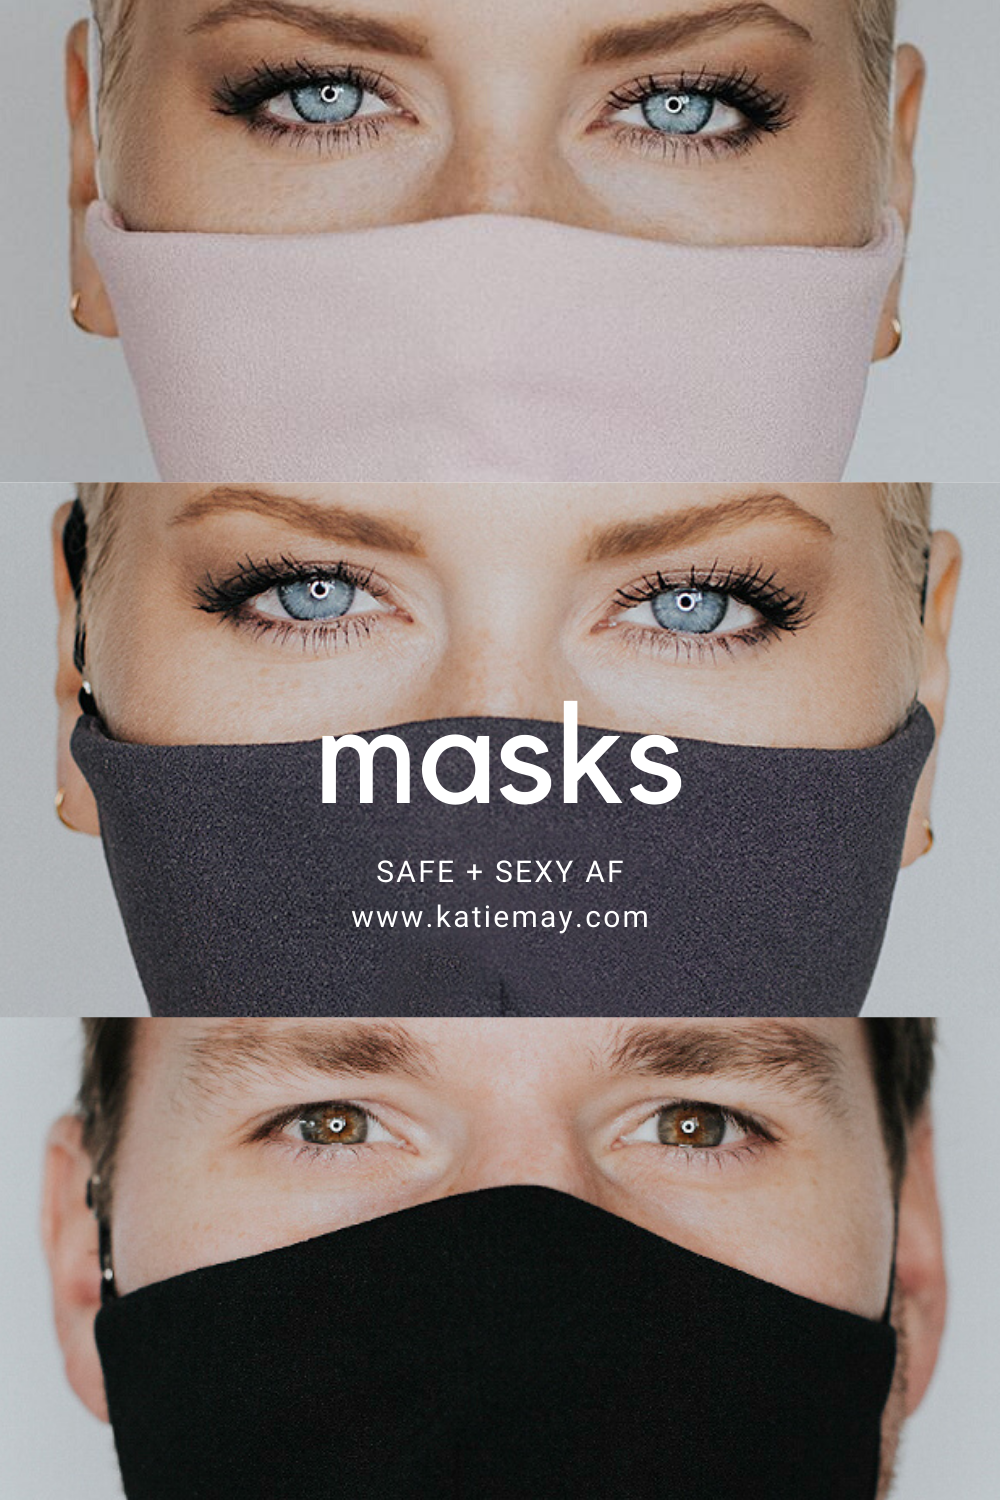 Do You Really Need A Gas Mask? Guide to Gas & Everyday